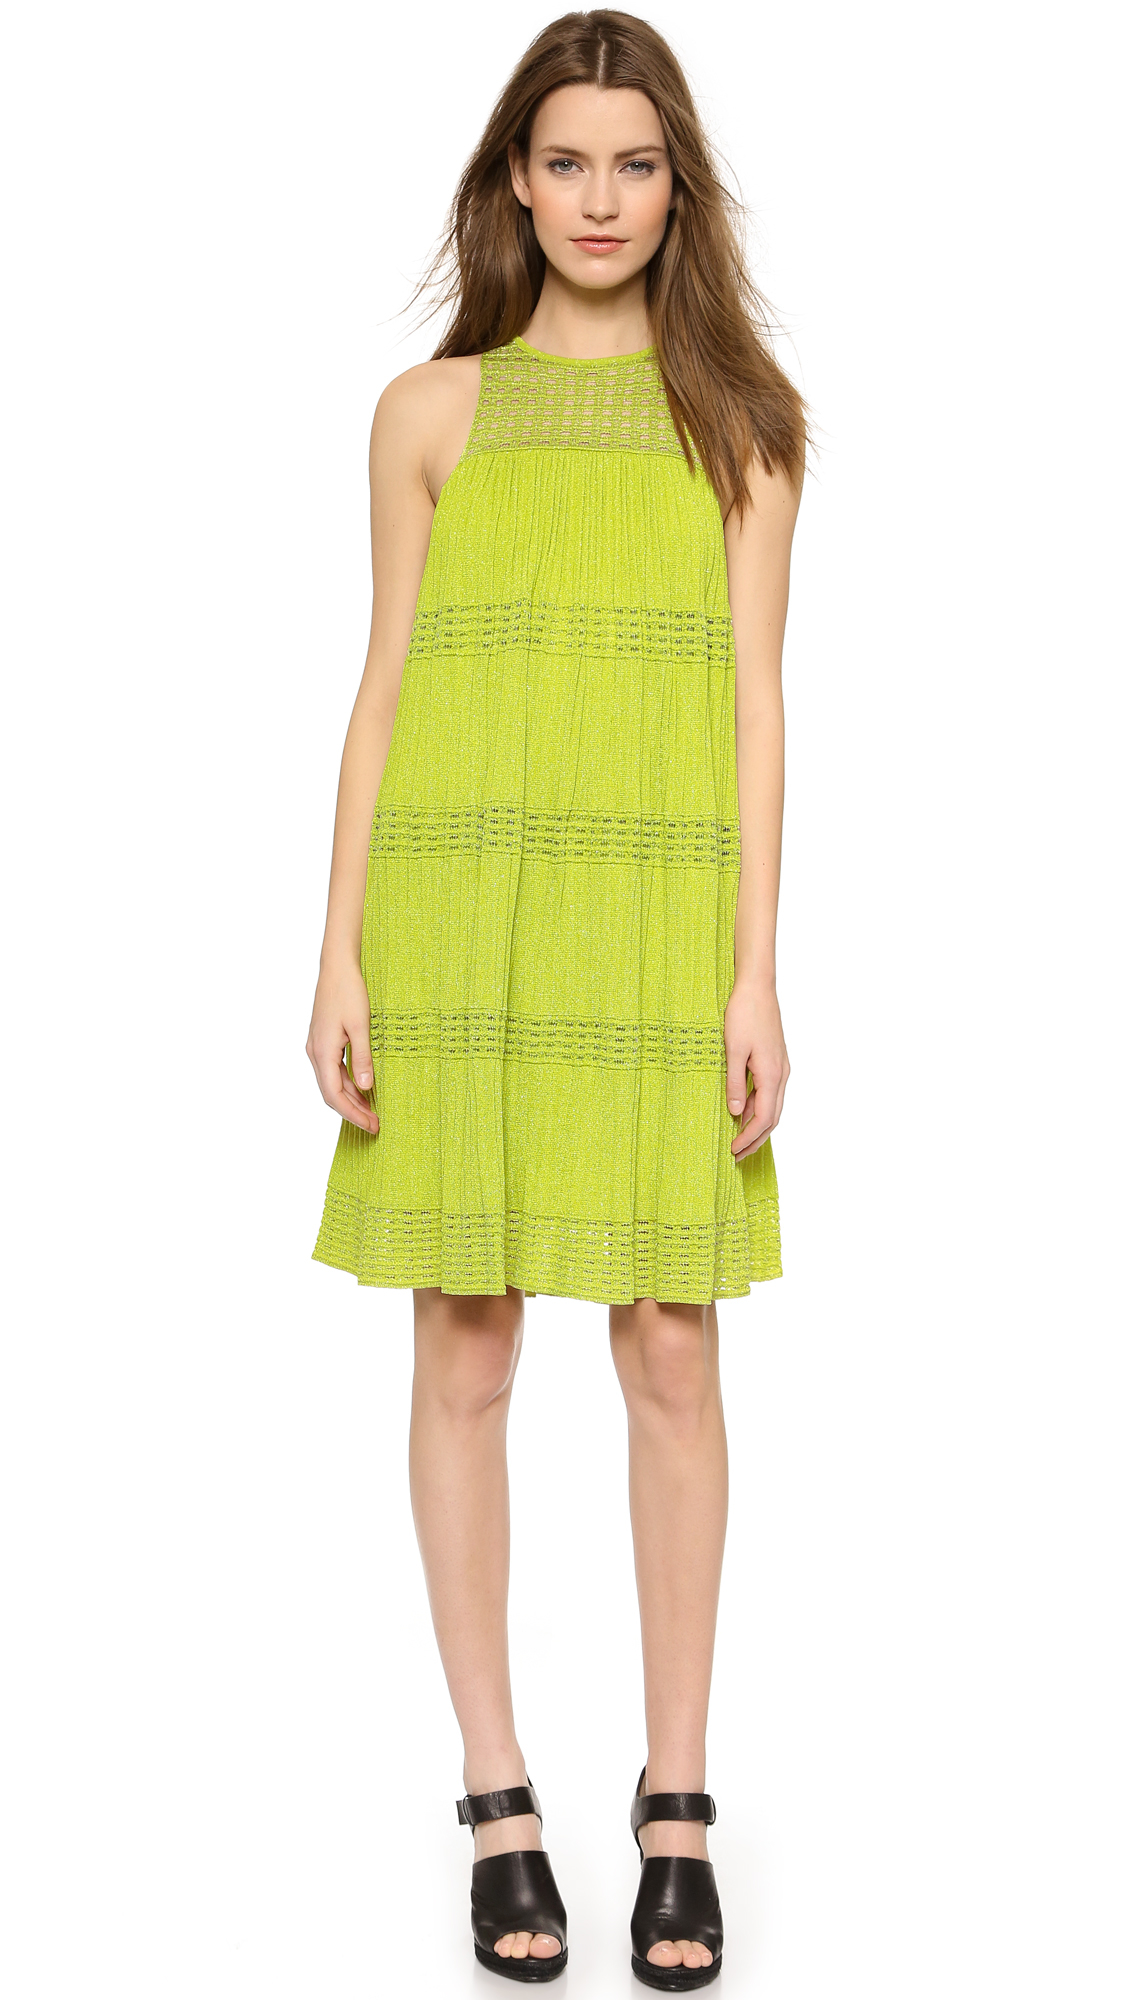 Chartreuse cocktail classic dress